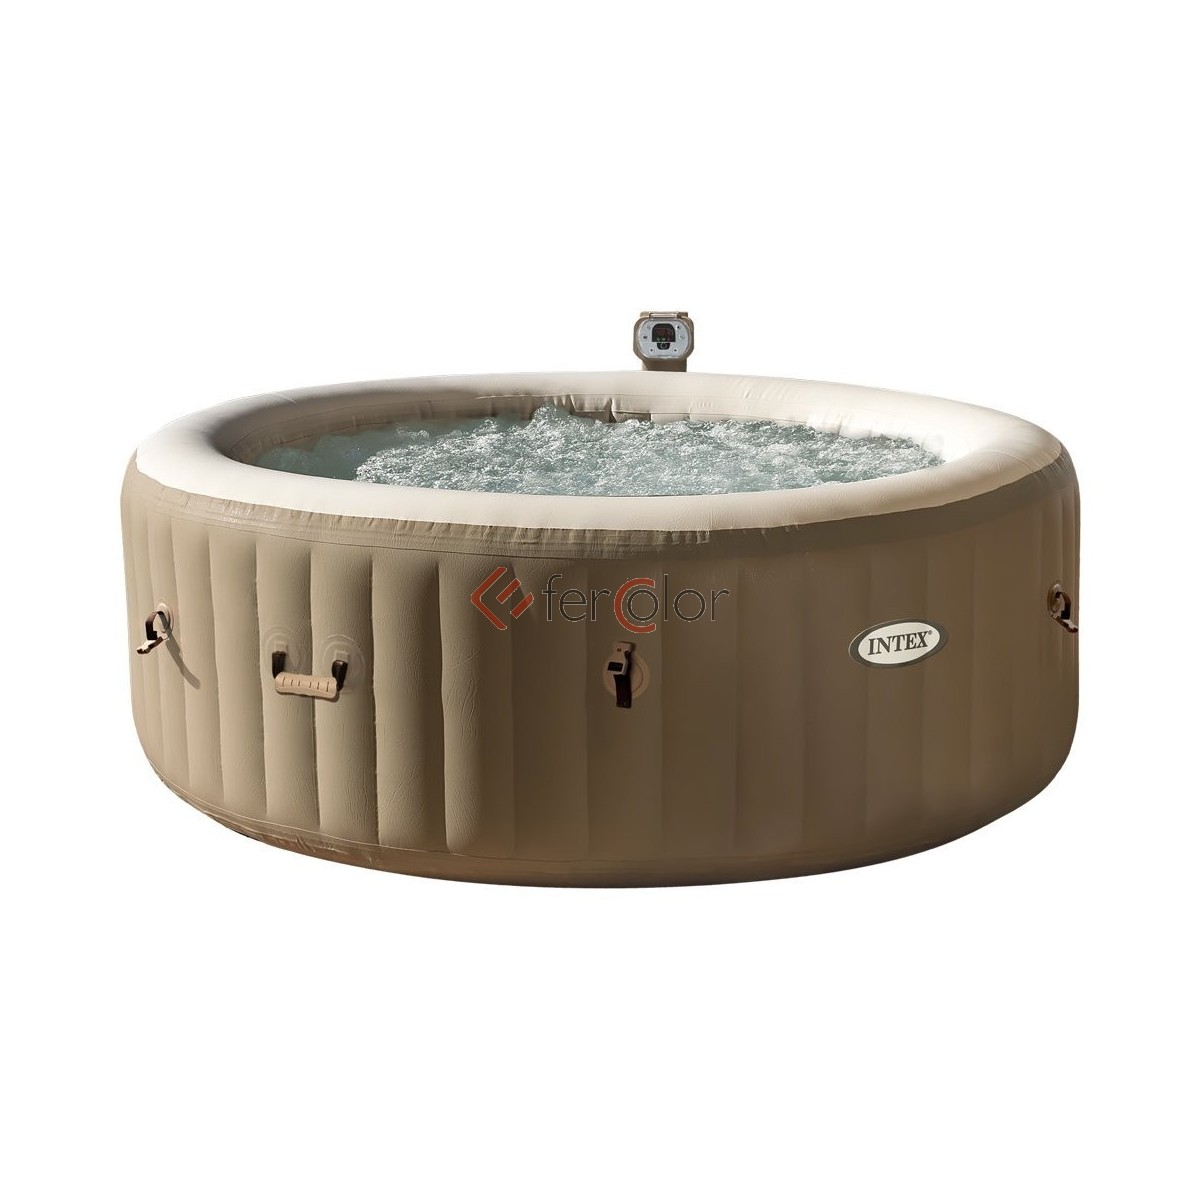 Intex Piscina Gonfiabile Piscina Gonfiabile Idromassaggio Spa Intex Quotpurespa Quot Cm